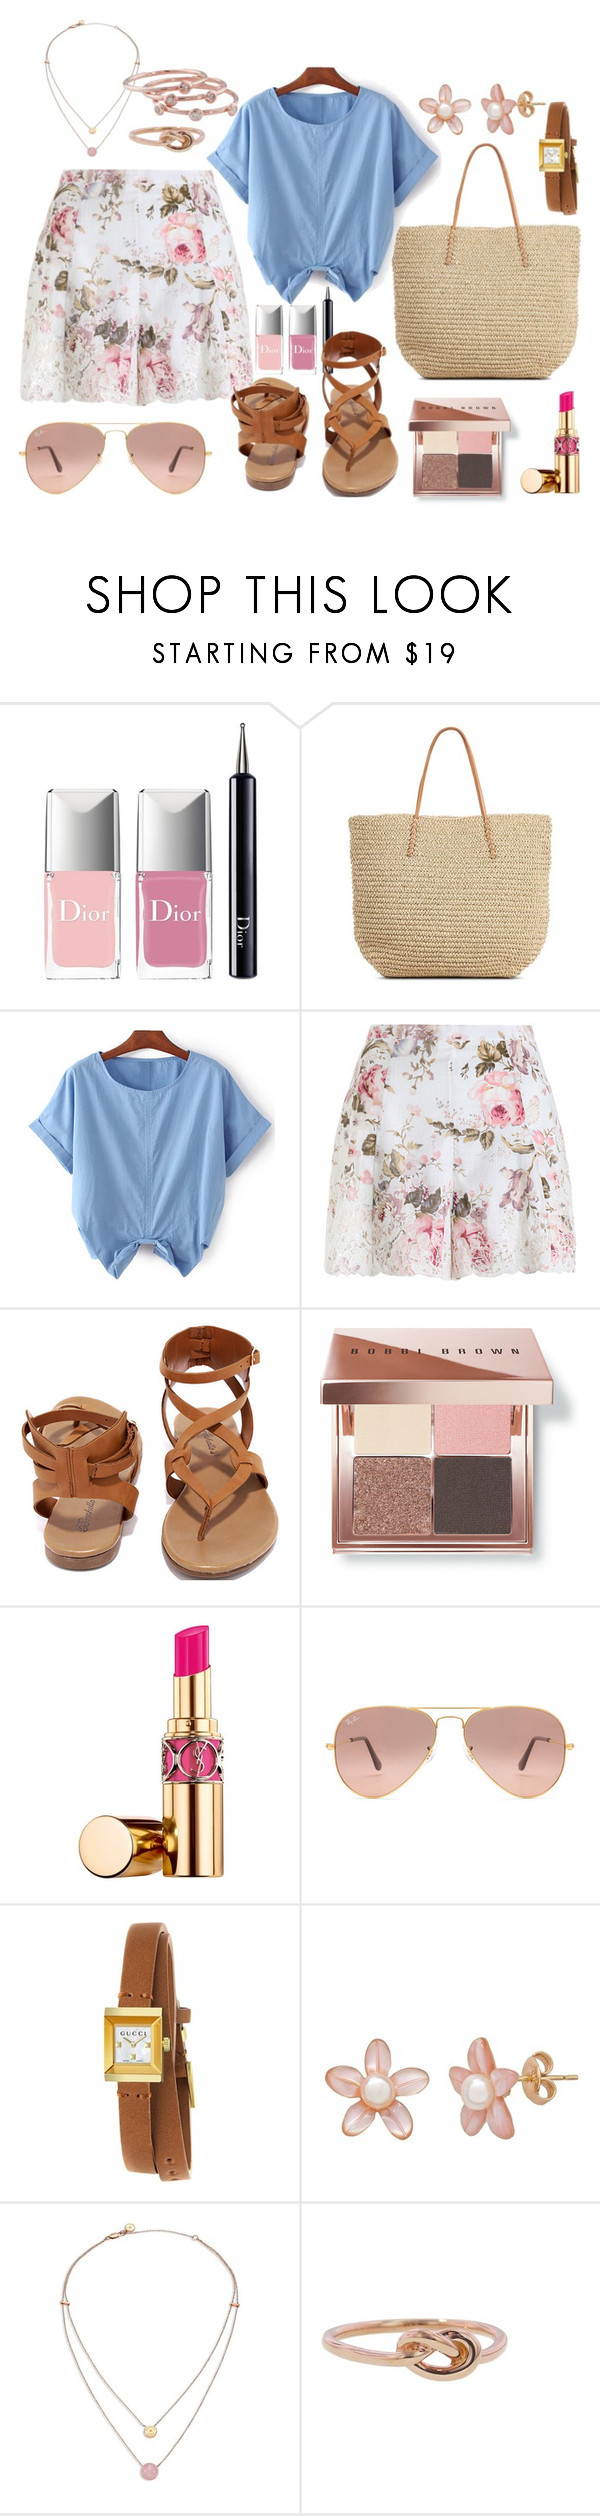 chambray and floral II by silversage on Polyvore featuring Zimmermann, Breckelle's, Target, Gucci, London Road, Finn, Michael Kors, Ray-Ban, Bobbi Brown Cosmetics and Yves Saint Laurent